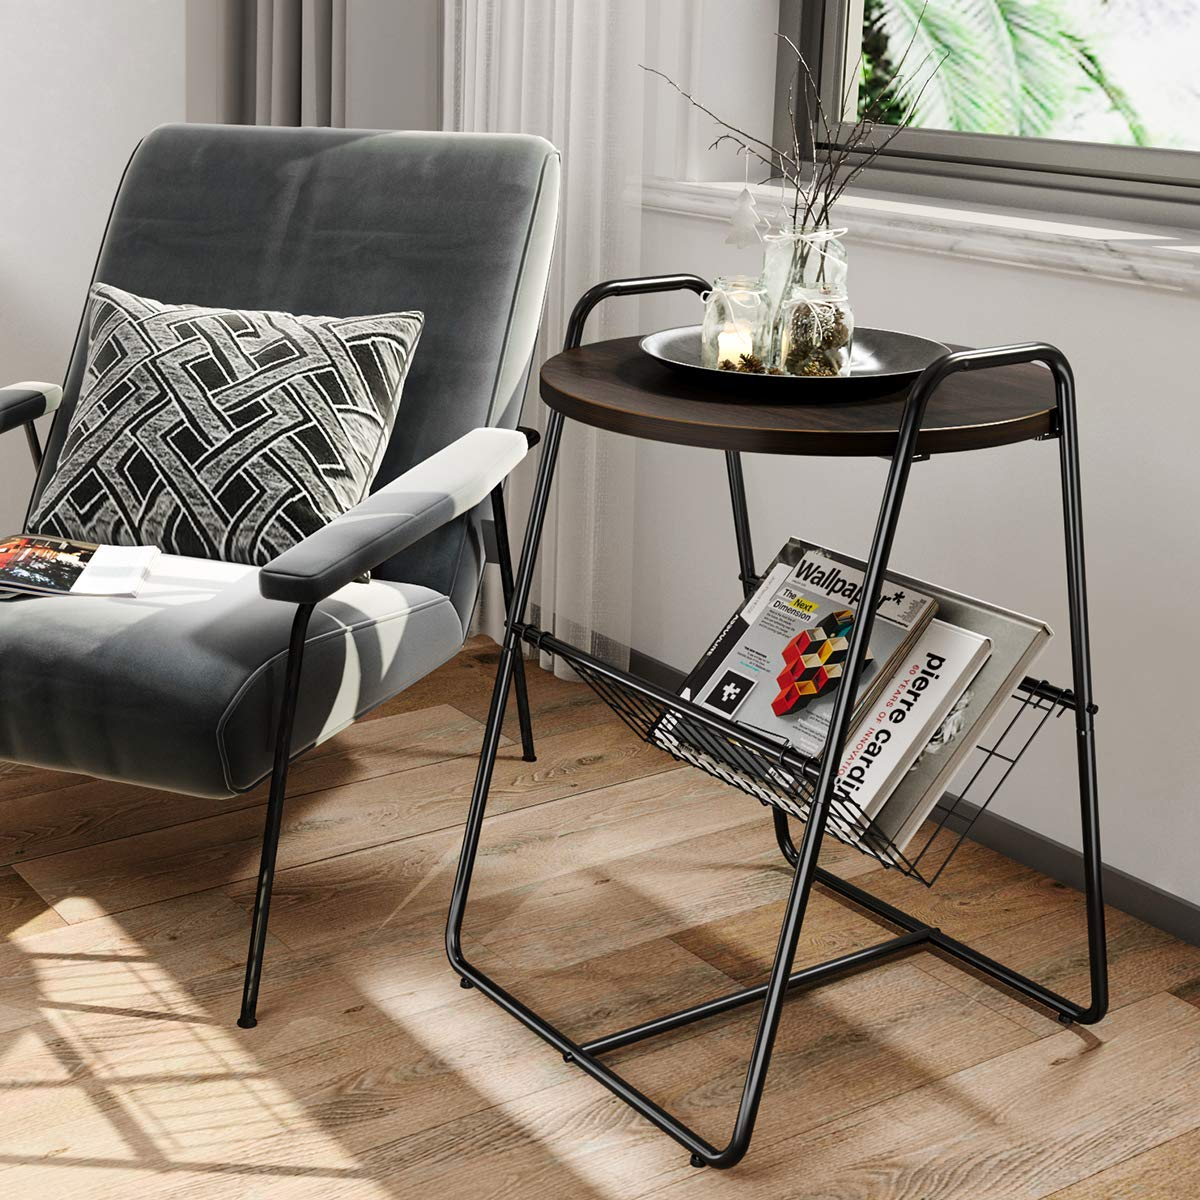 Homemaxs Side Table Round End Table with Metal Storage Basket for Living Room, Bedroom, Walnut Black, 17.7 17.7 26.4 in